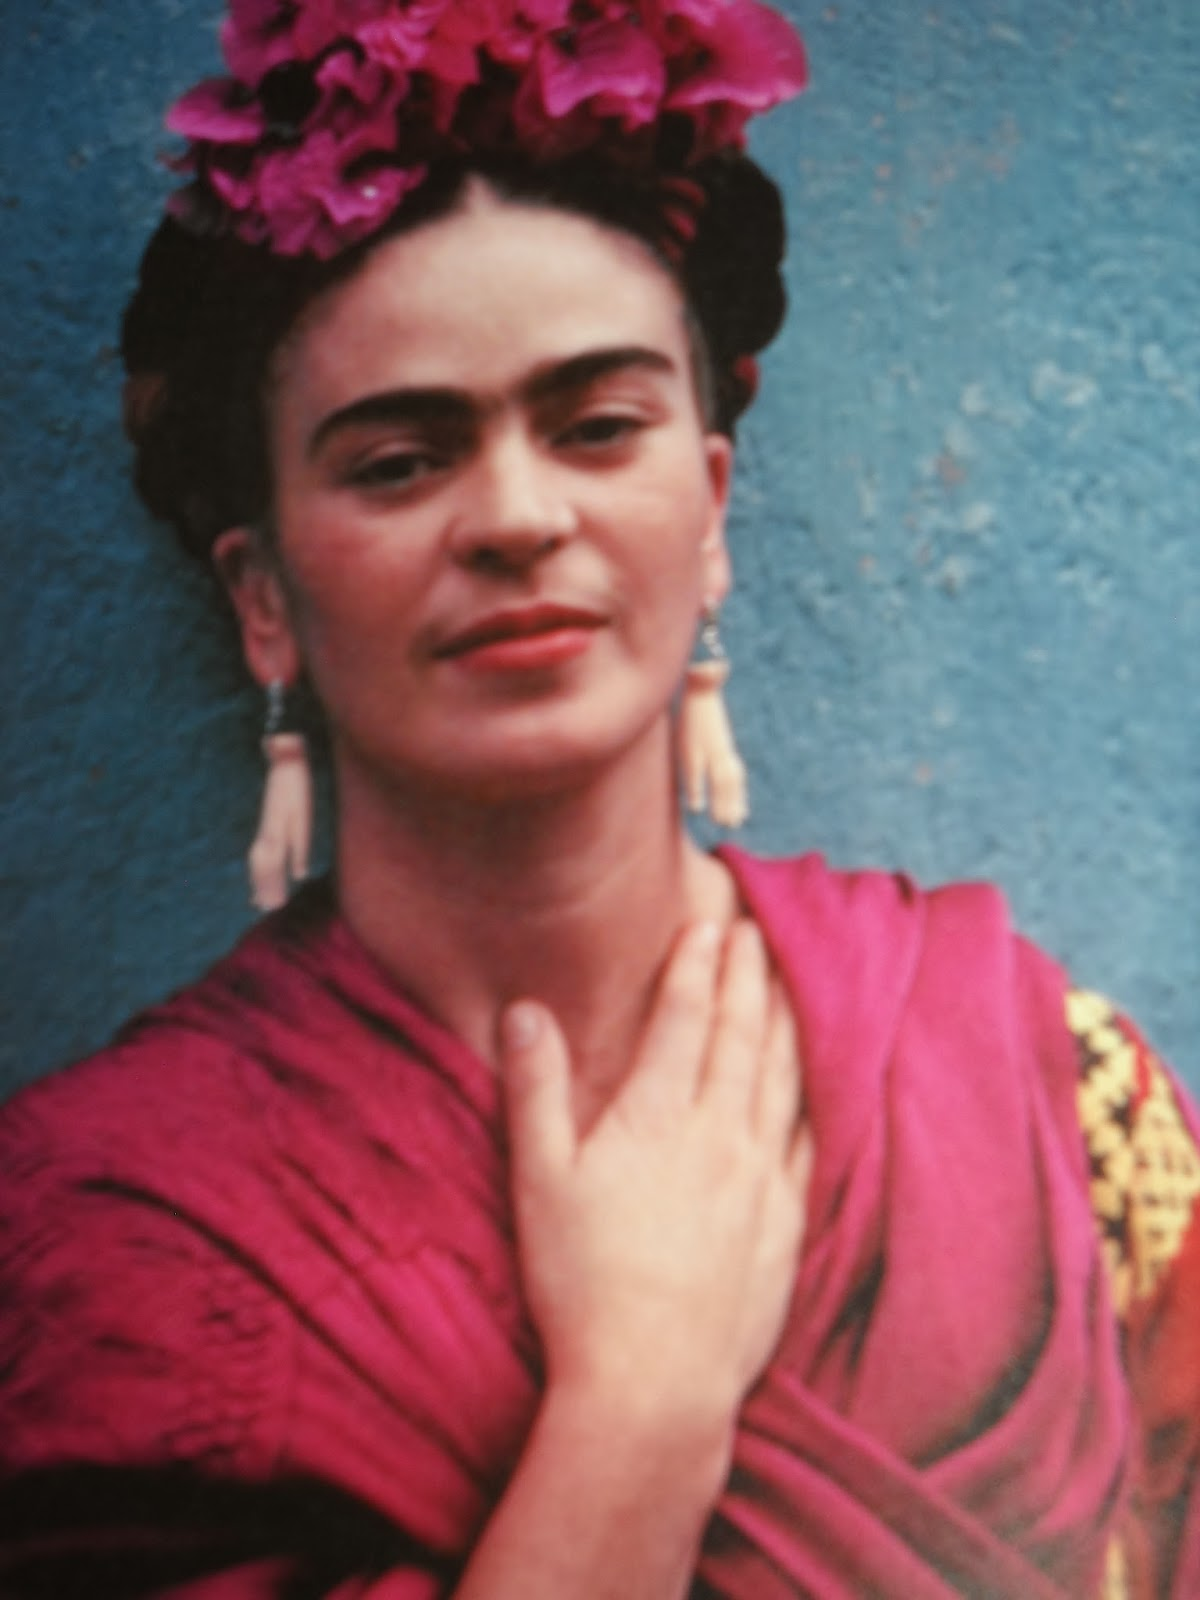 The Pain and Suffering of Frida Kahlo